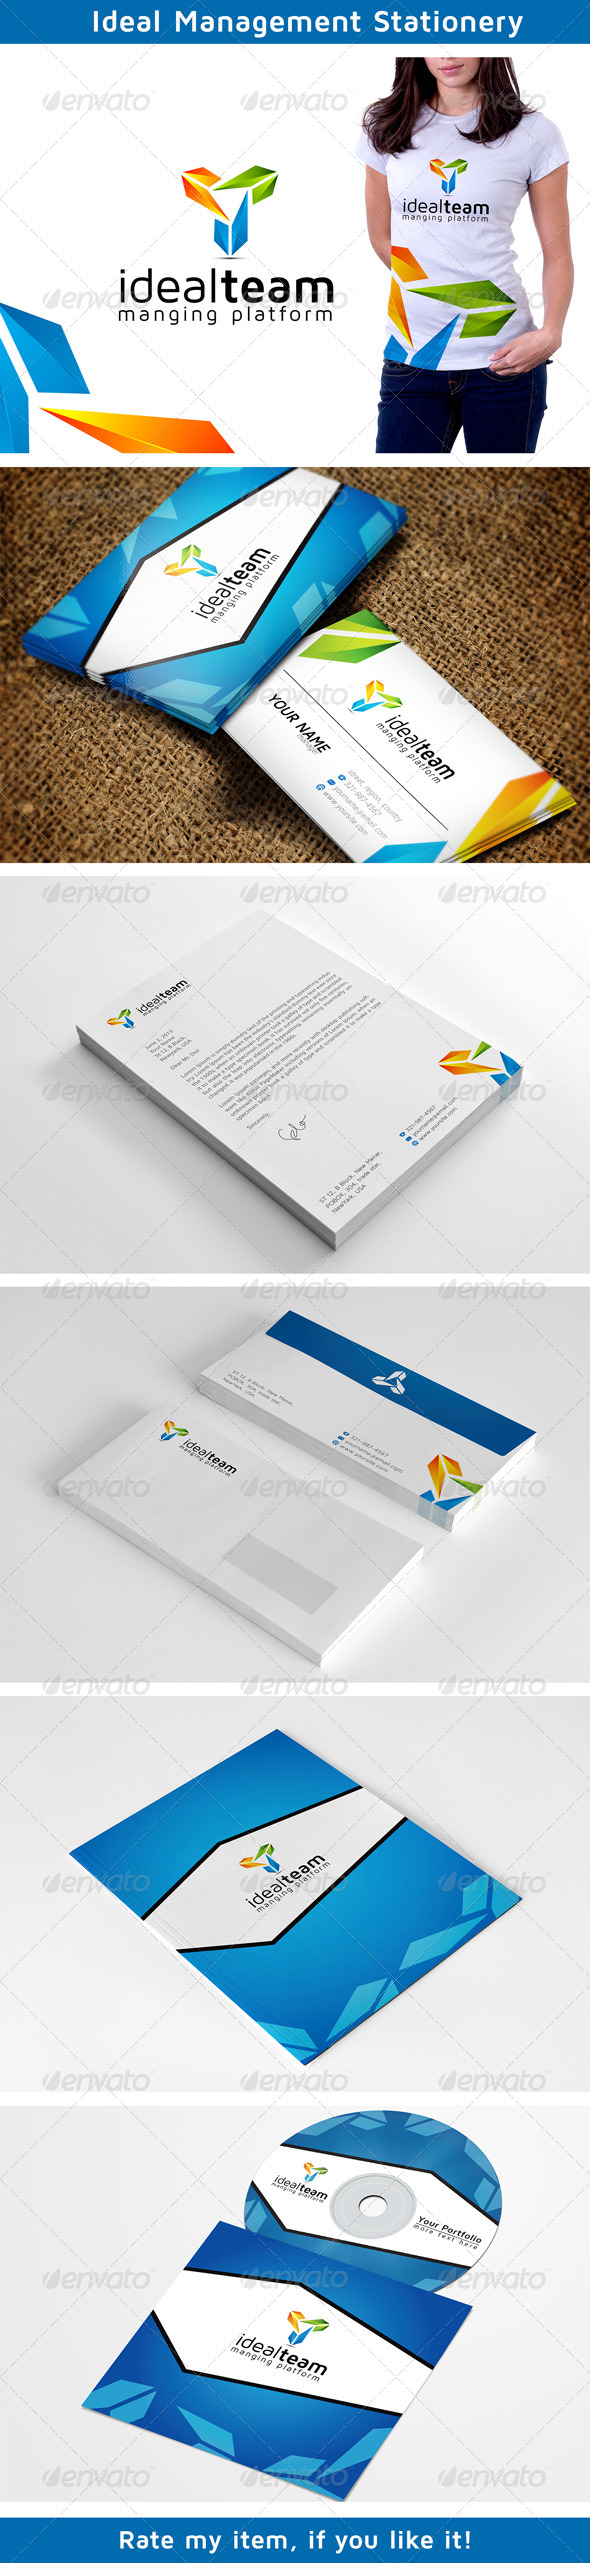 Colors Management Stationery - Print Templates